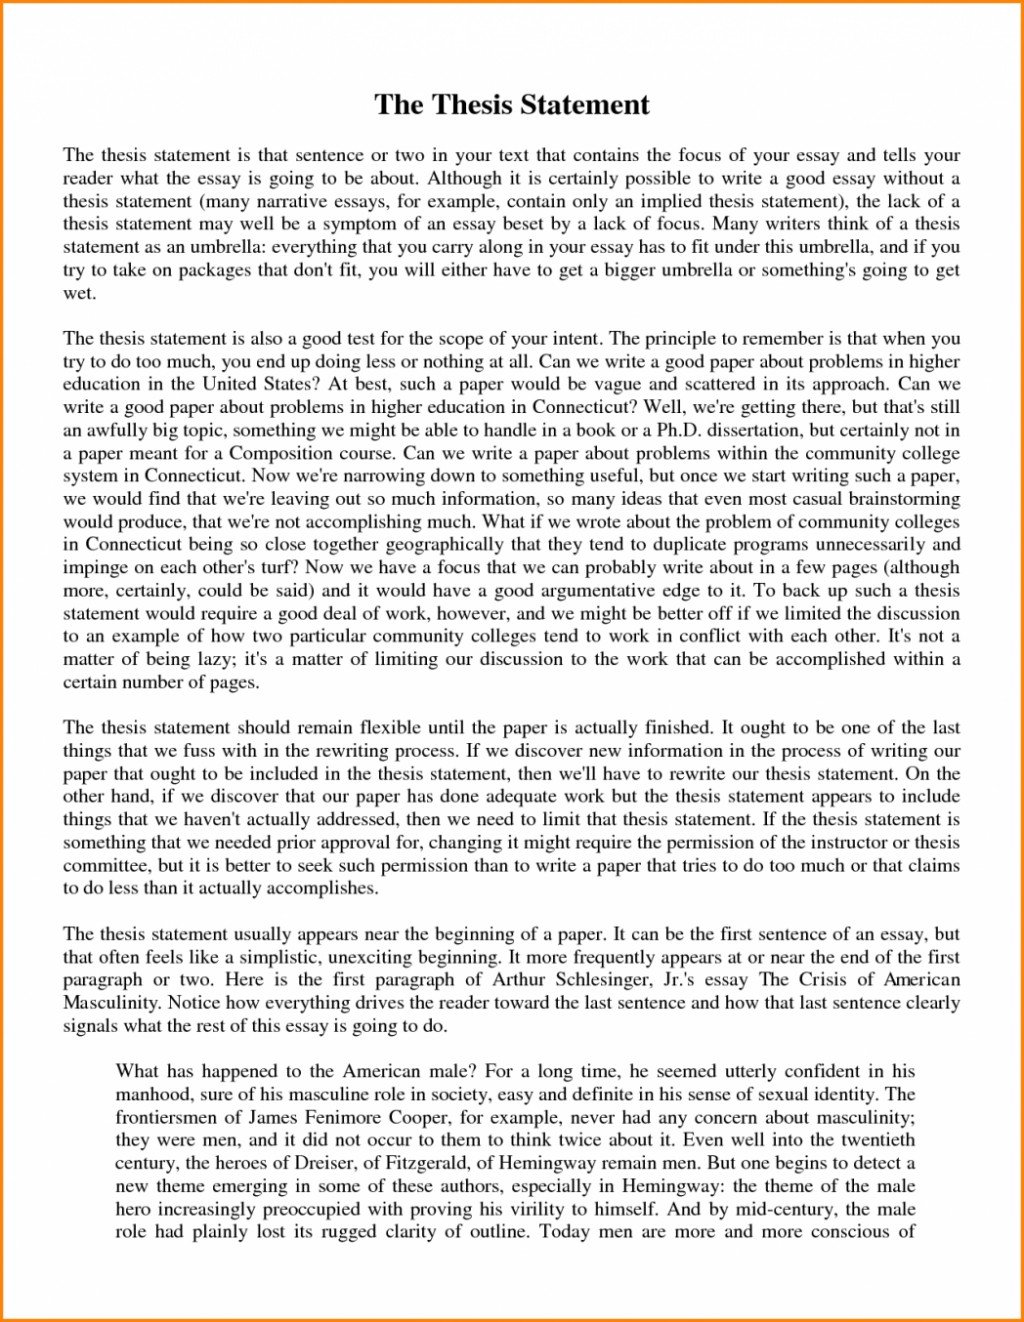 025 Narrative Essay Thesis Statements Art College For Essays Application Football High School Vs Good 1048x1354 What Is In An Fascinating A Statement The Purpose Of Argumentative Informative Large